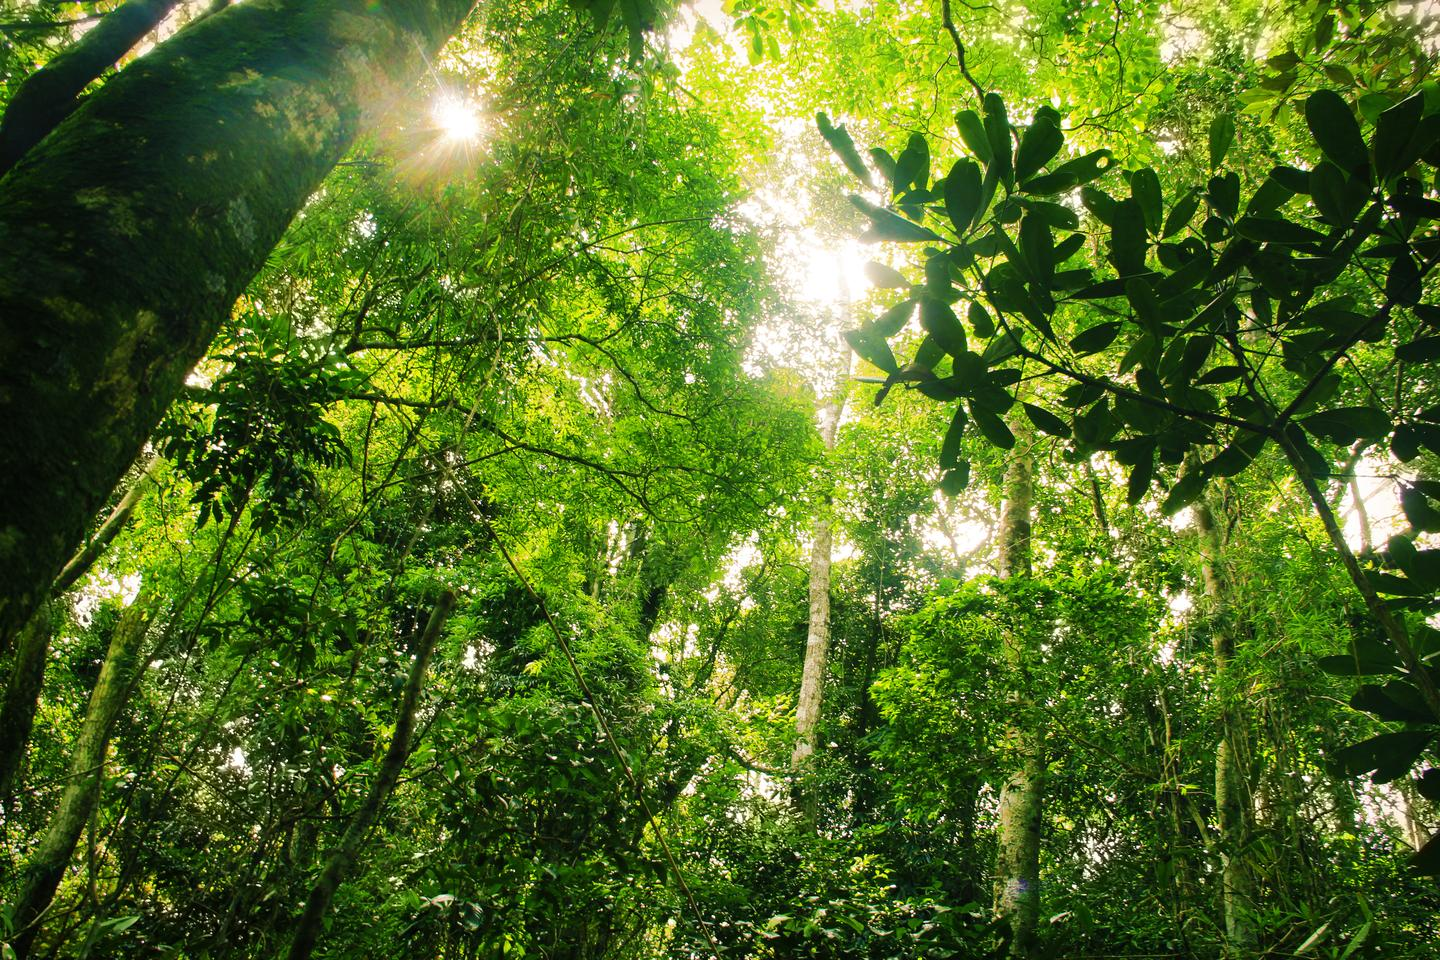 Ecosystems like thisBrazilian ranforest are feeling the effects of human development